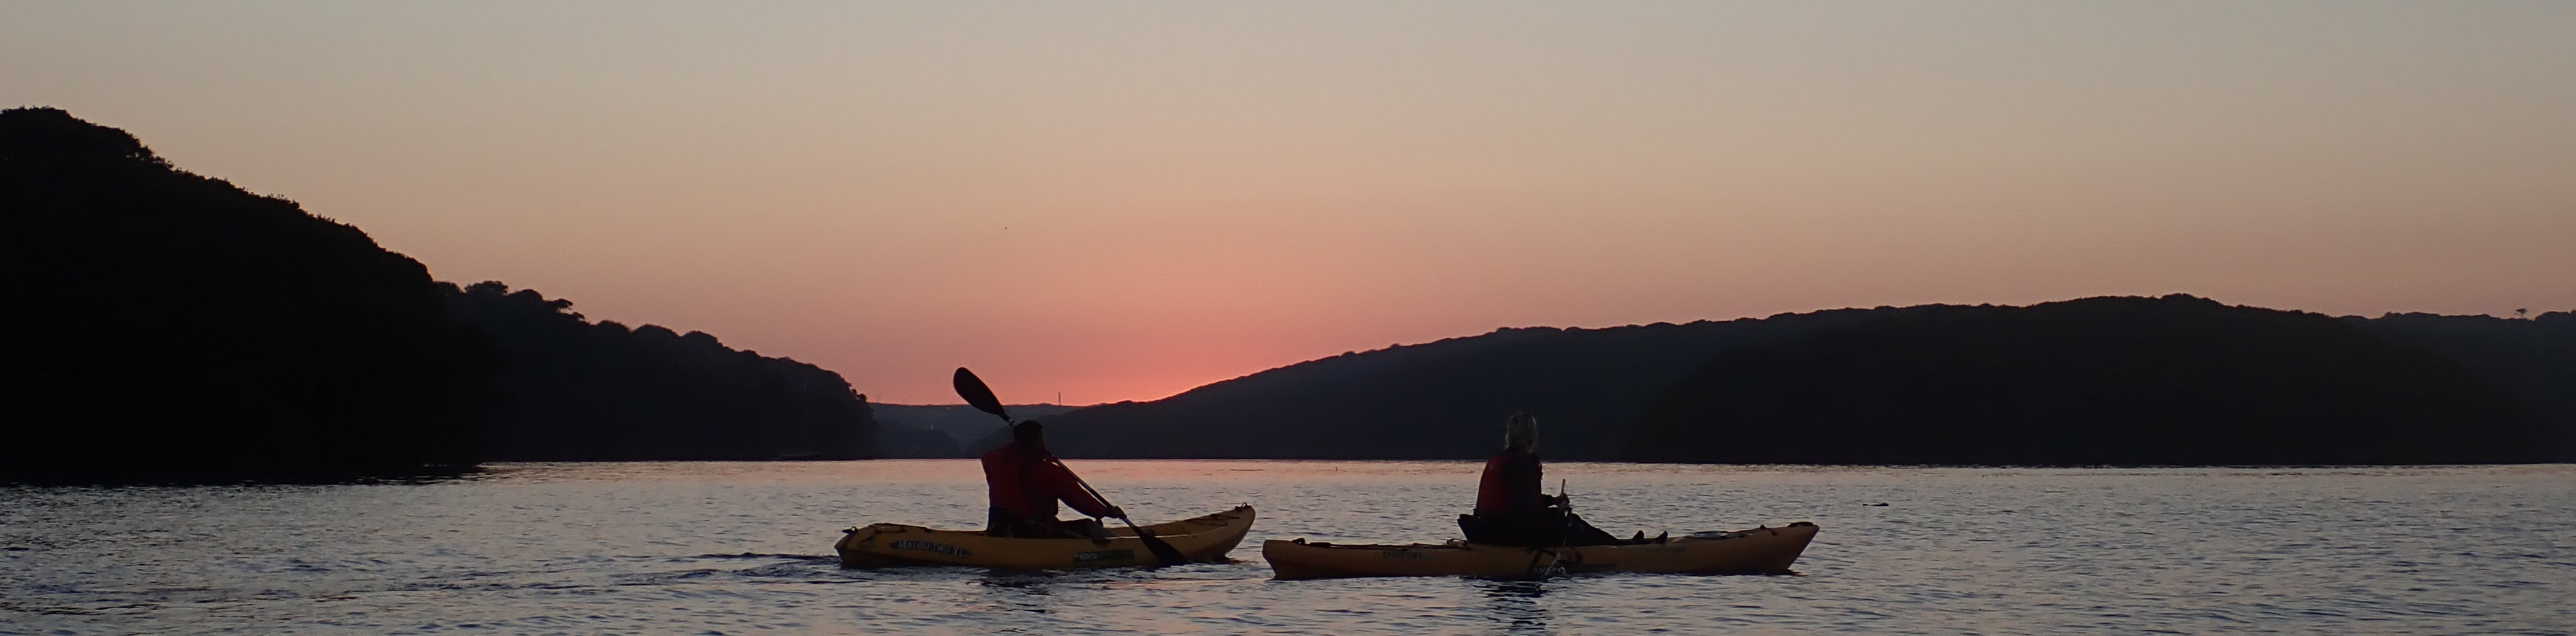 Kayak this Autumn with Koru Kayaking